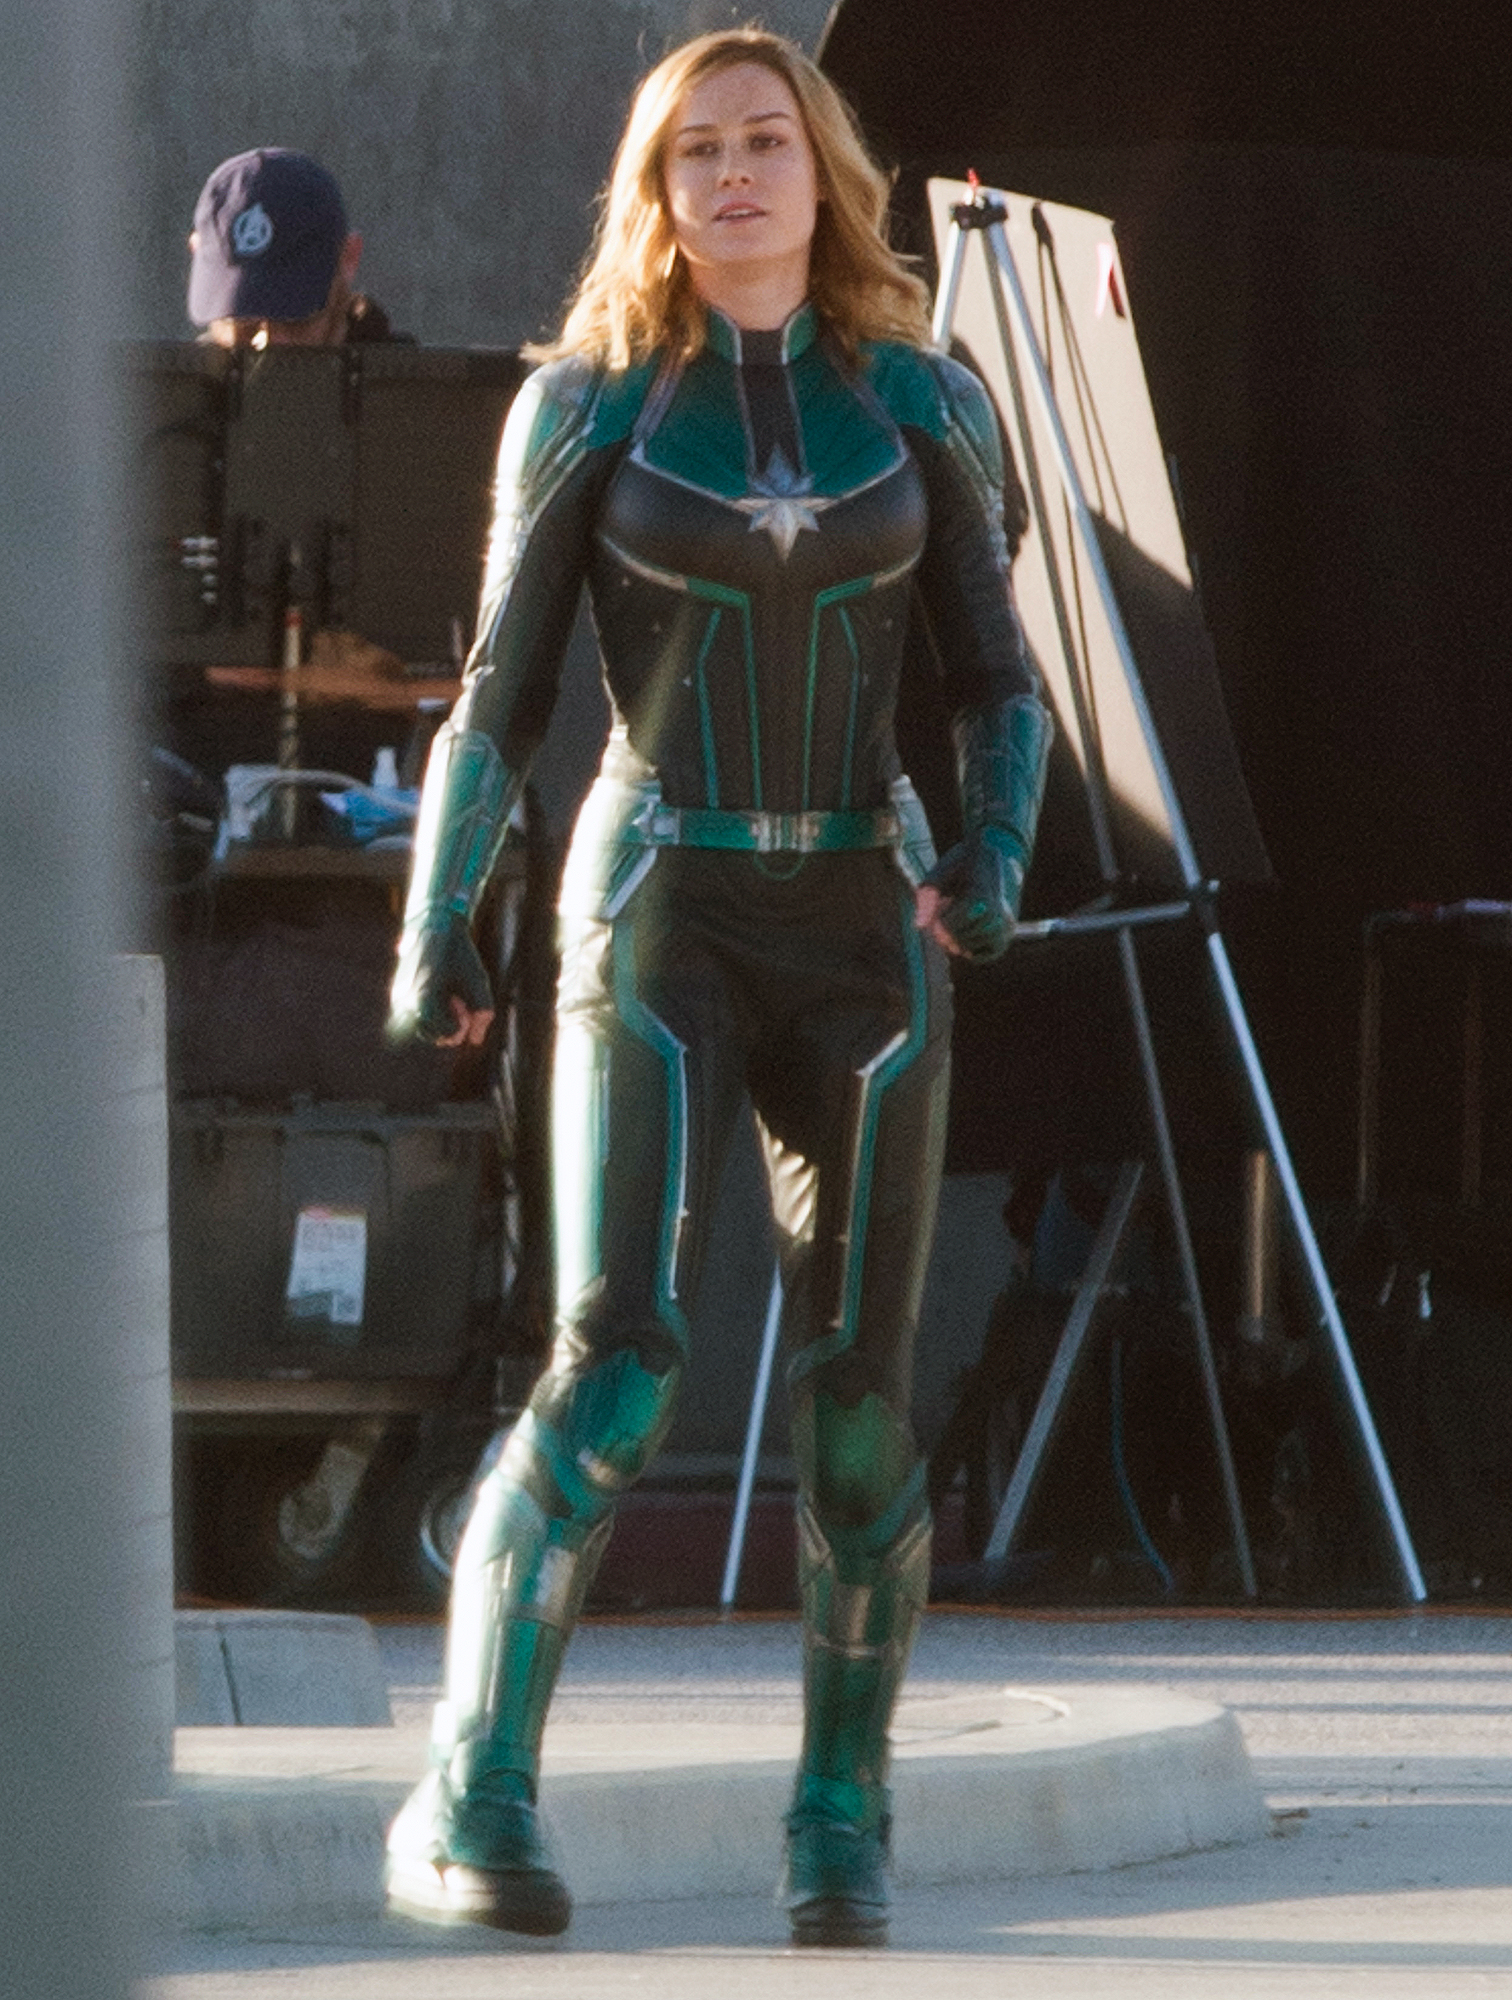 EXCLUSIVE: FIRST PICS! Brie Larson is Spotted in Costume as 'Captain Marvel' During the First Day of Filming in Los Angeles.